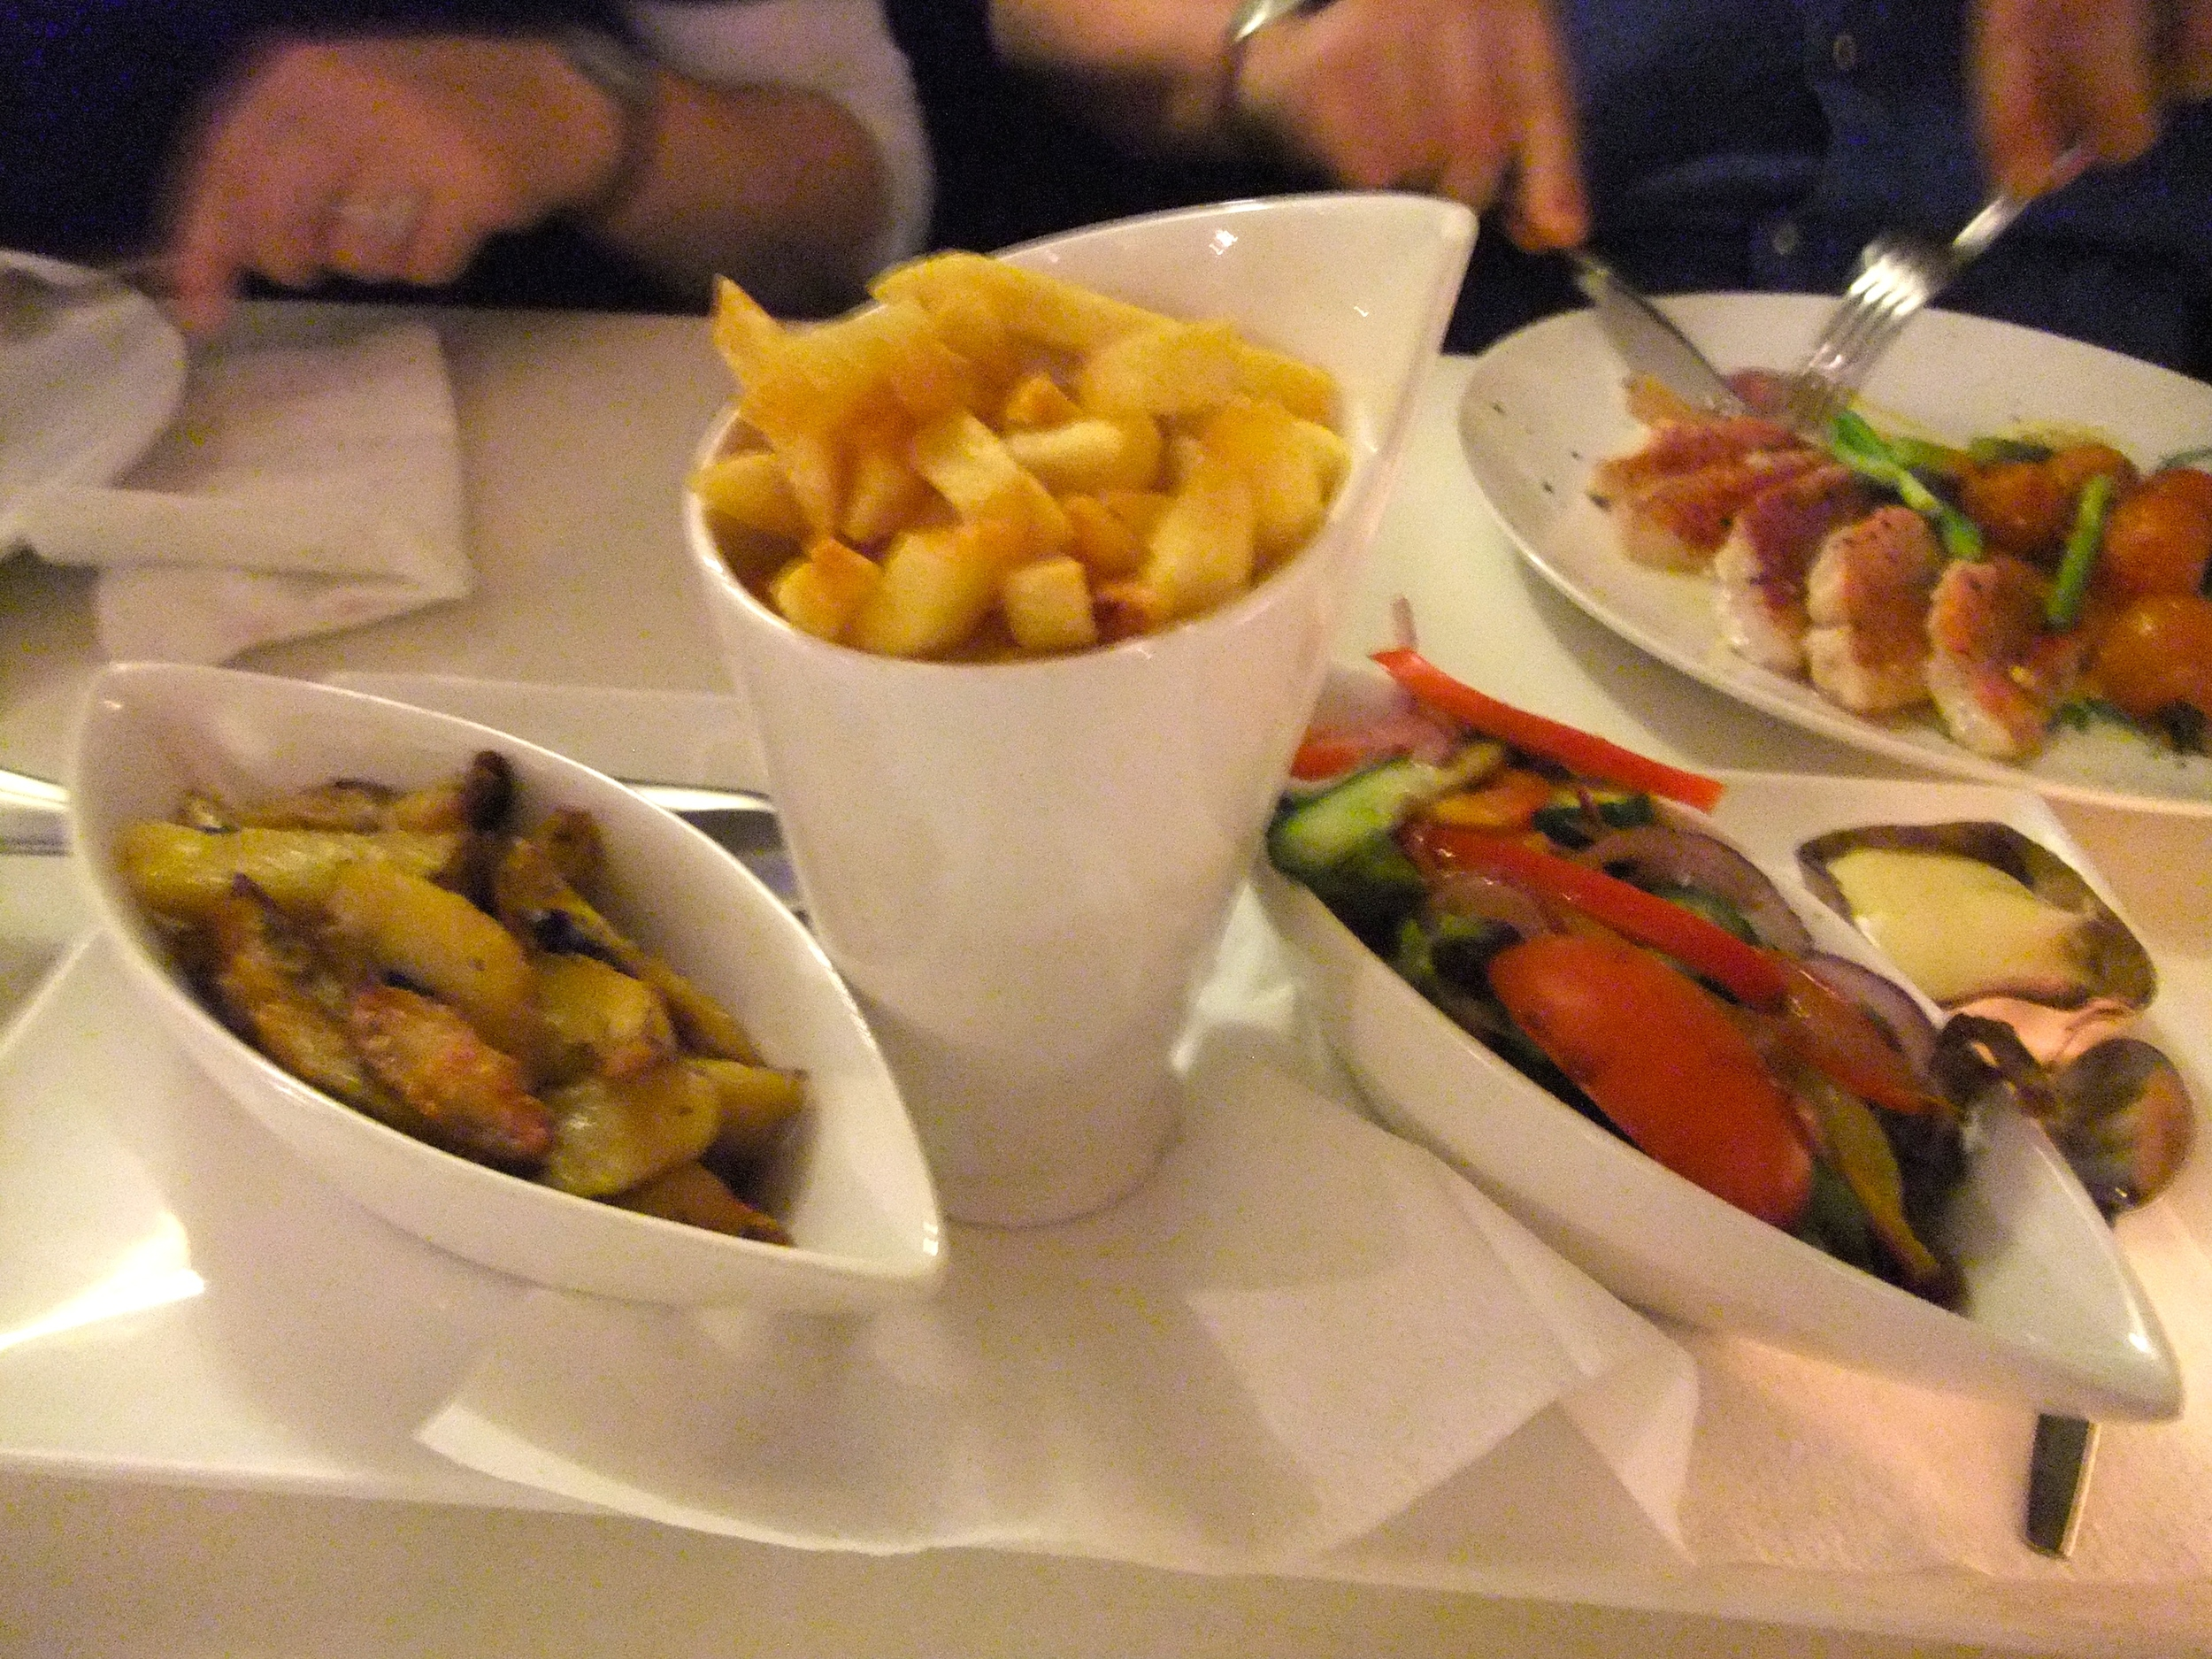 Fries and sides at 't Nieuwe Plein